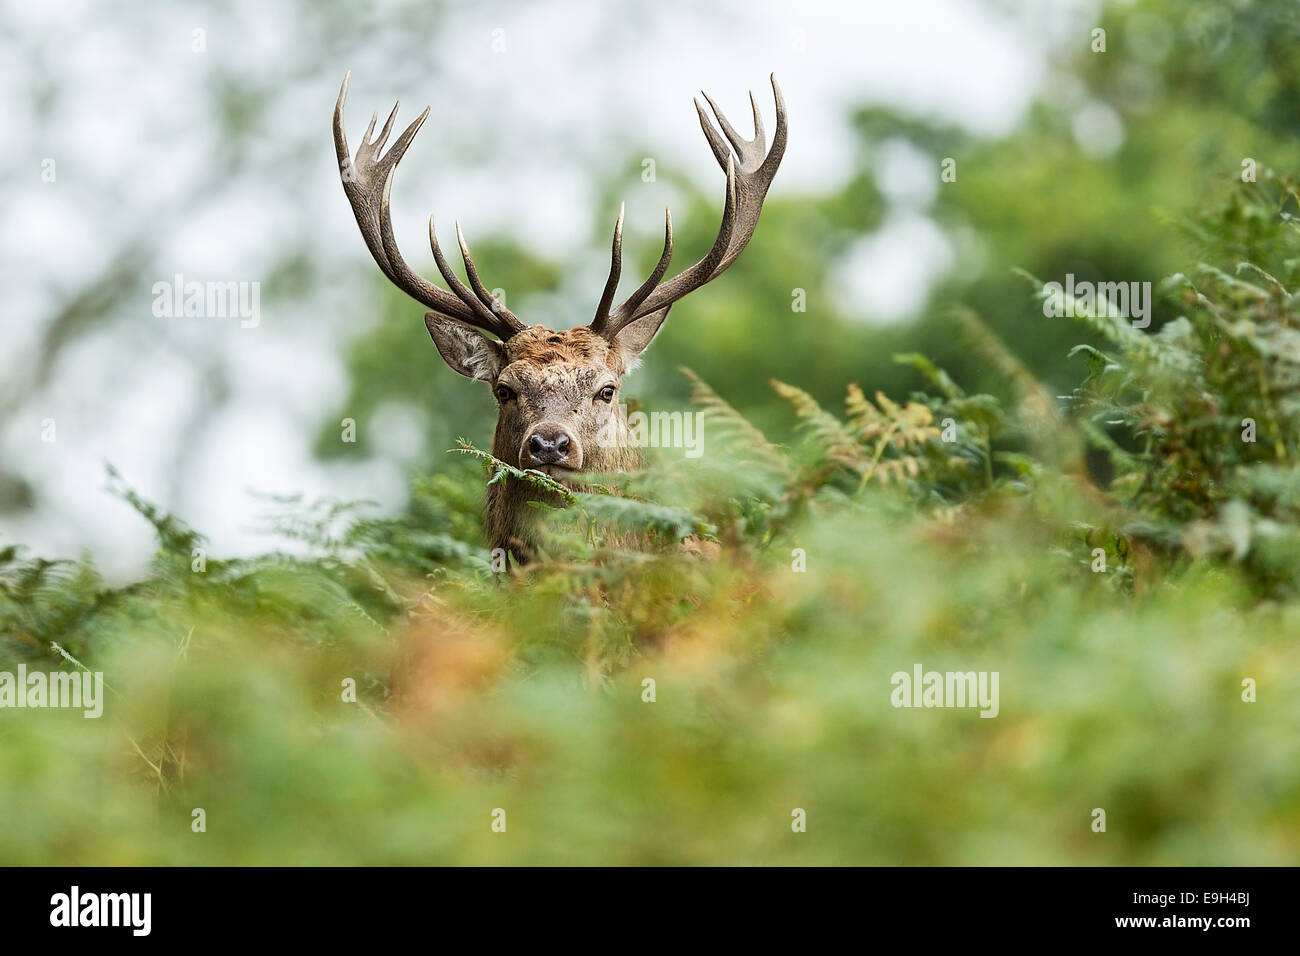 Red deer (Cervus elaphus) during the annual rut - Stock Image